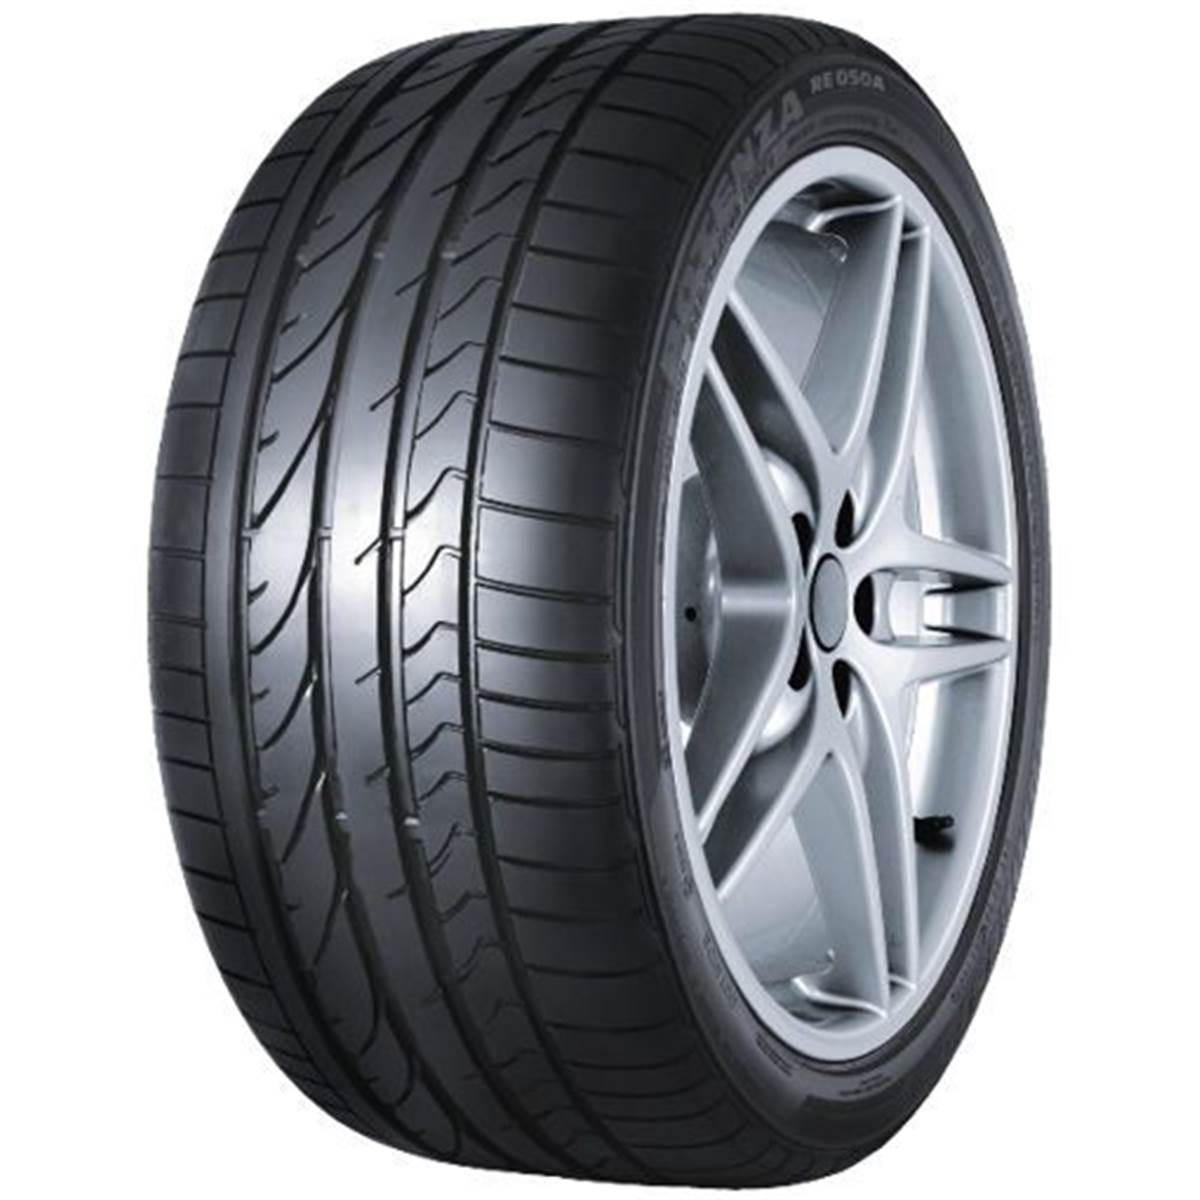 Pneu Bridgestone 255/35R19 96Y POTENZA RE050 ASYMMETRIC MO1 XL